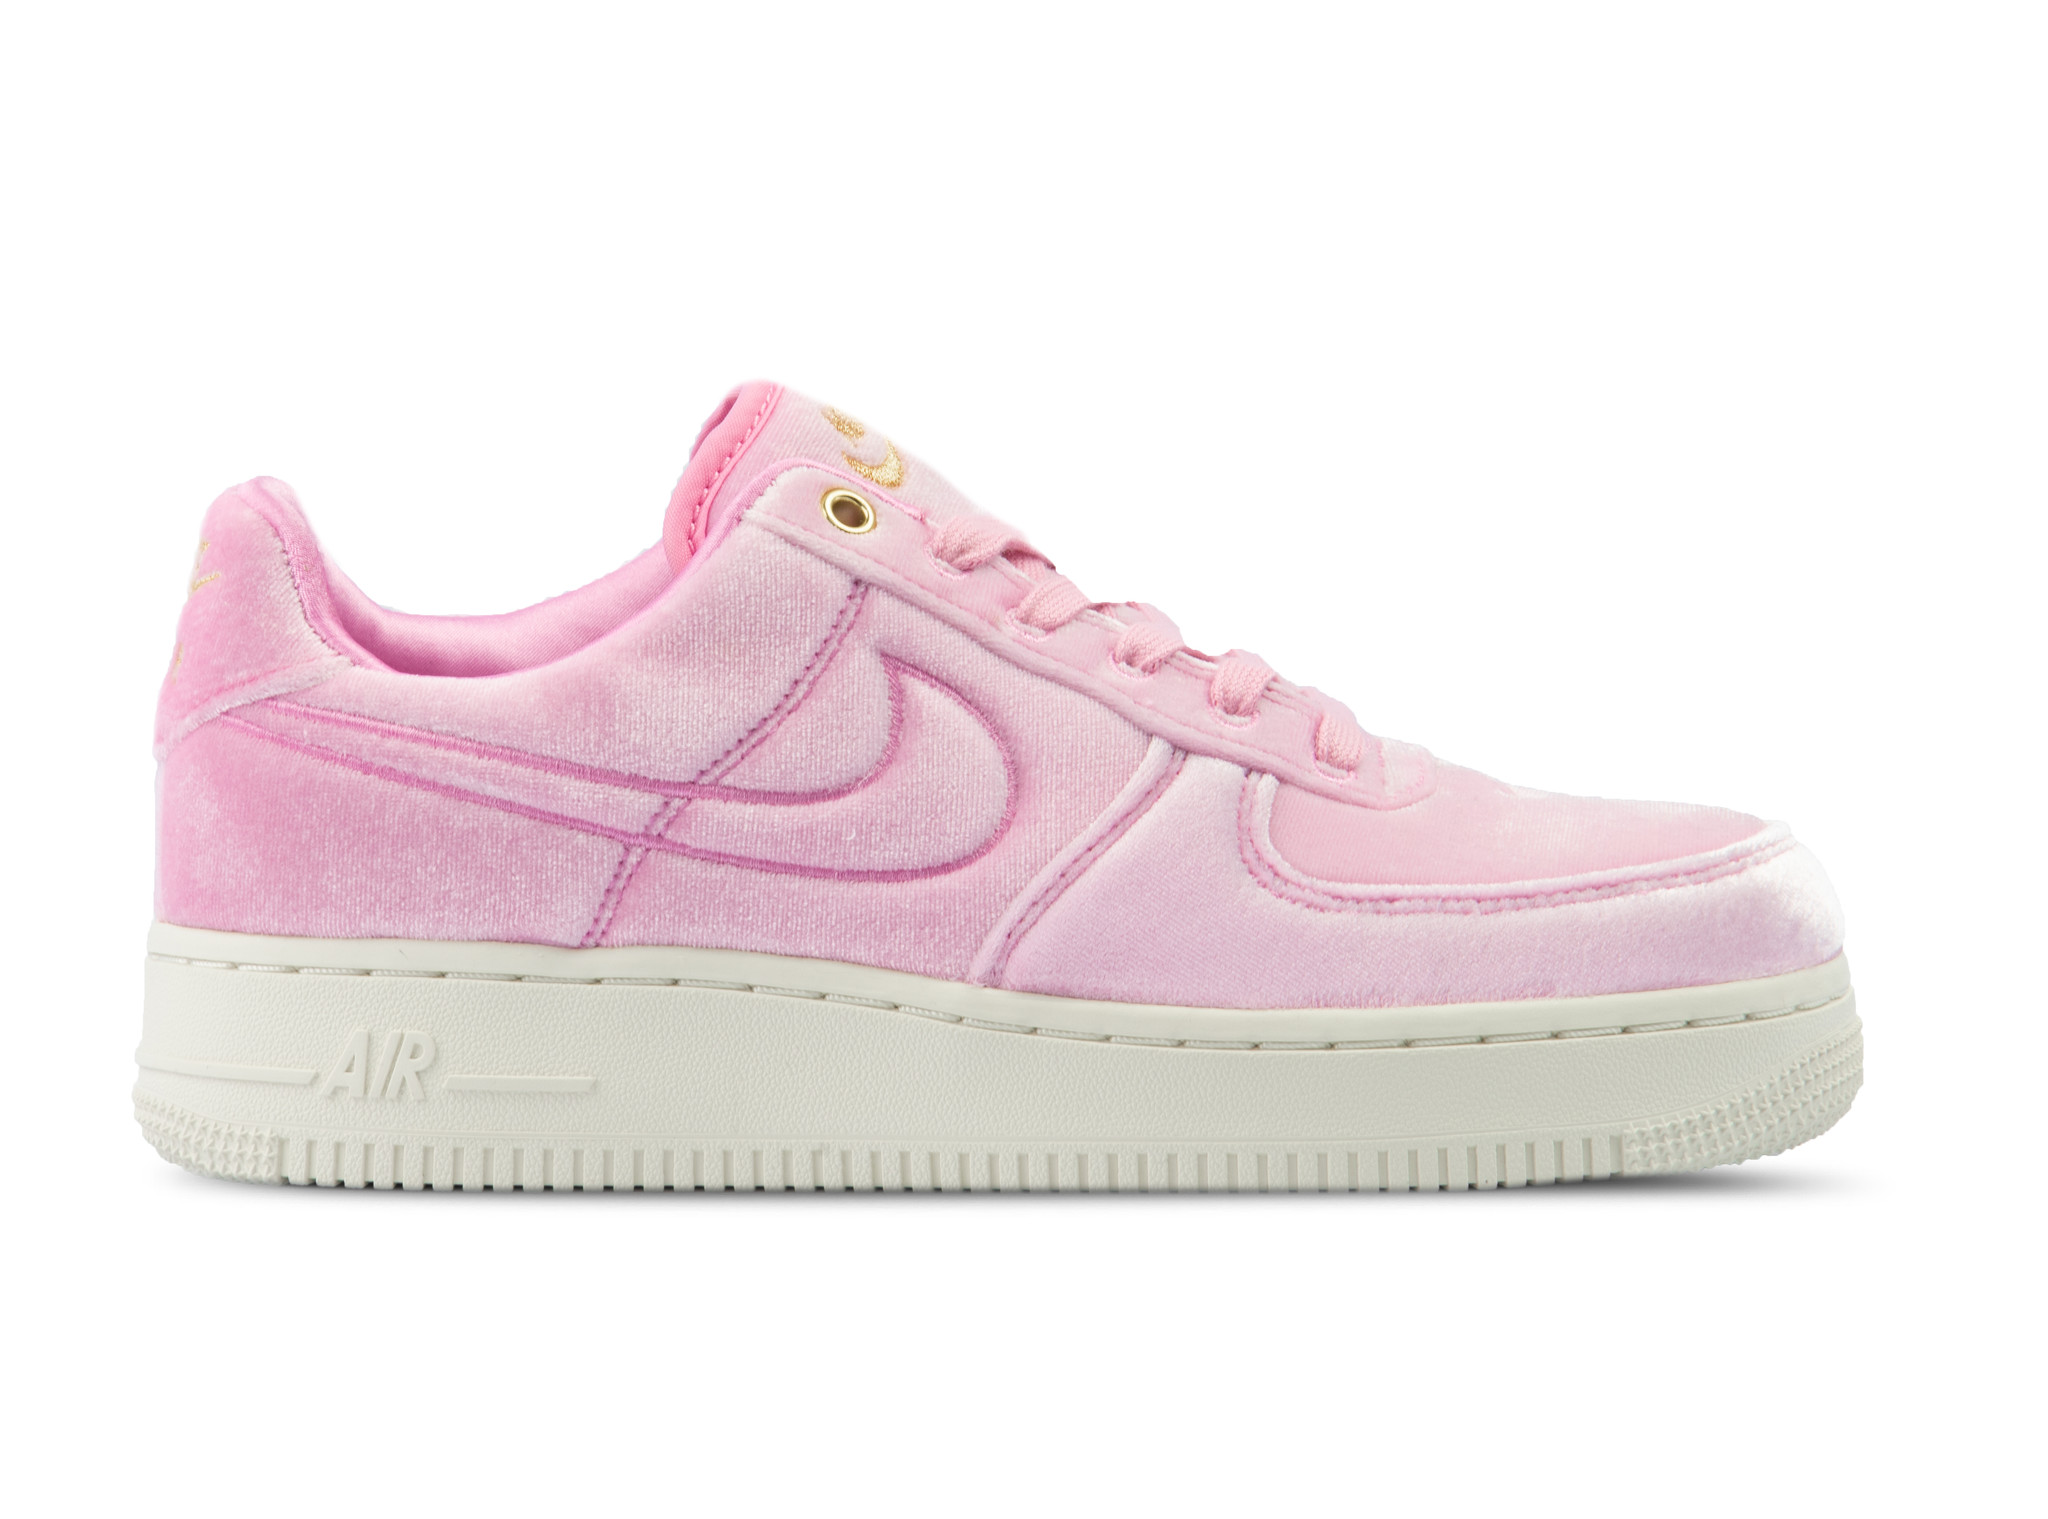 8b80d95983a Air Force 1 '07 PRM 3 Pink Rise Pink Rise Sail AT4144 600 is toegevoegd aan  uw winkelwagen